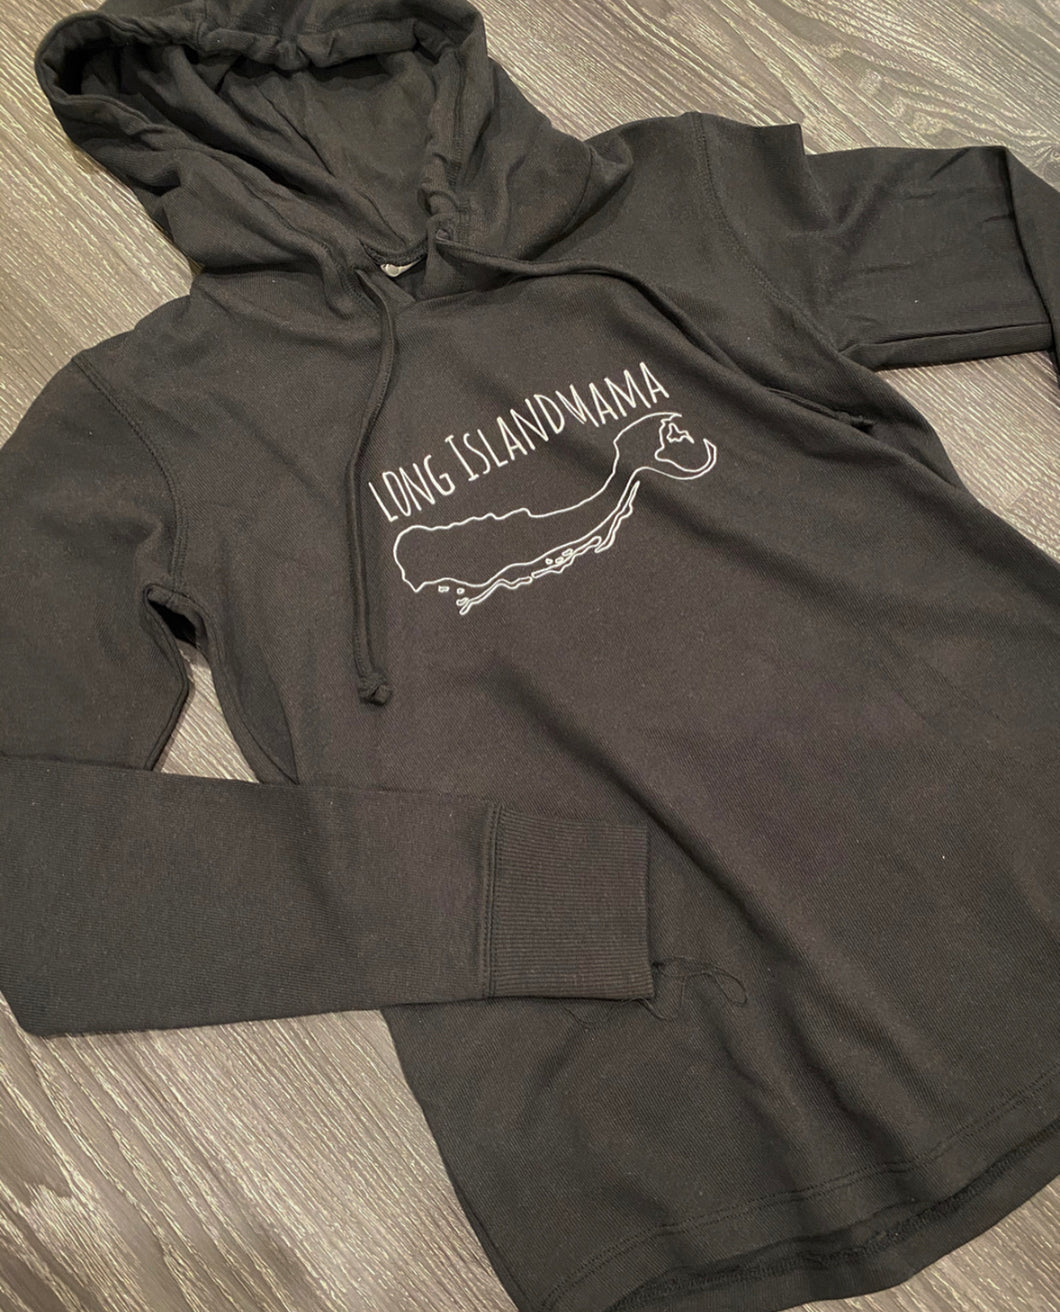 Long Island Mama Hoodie in Black